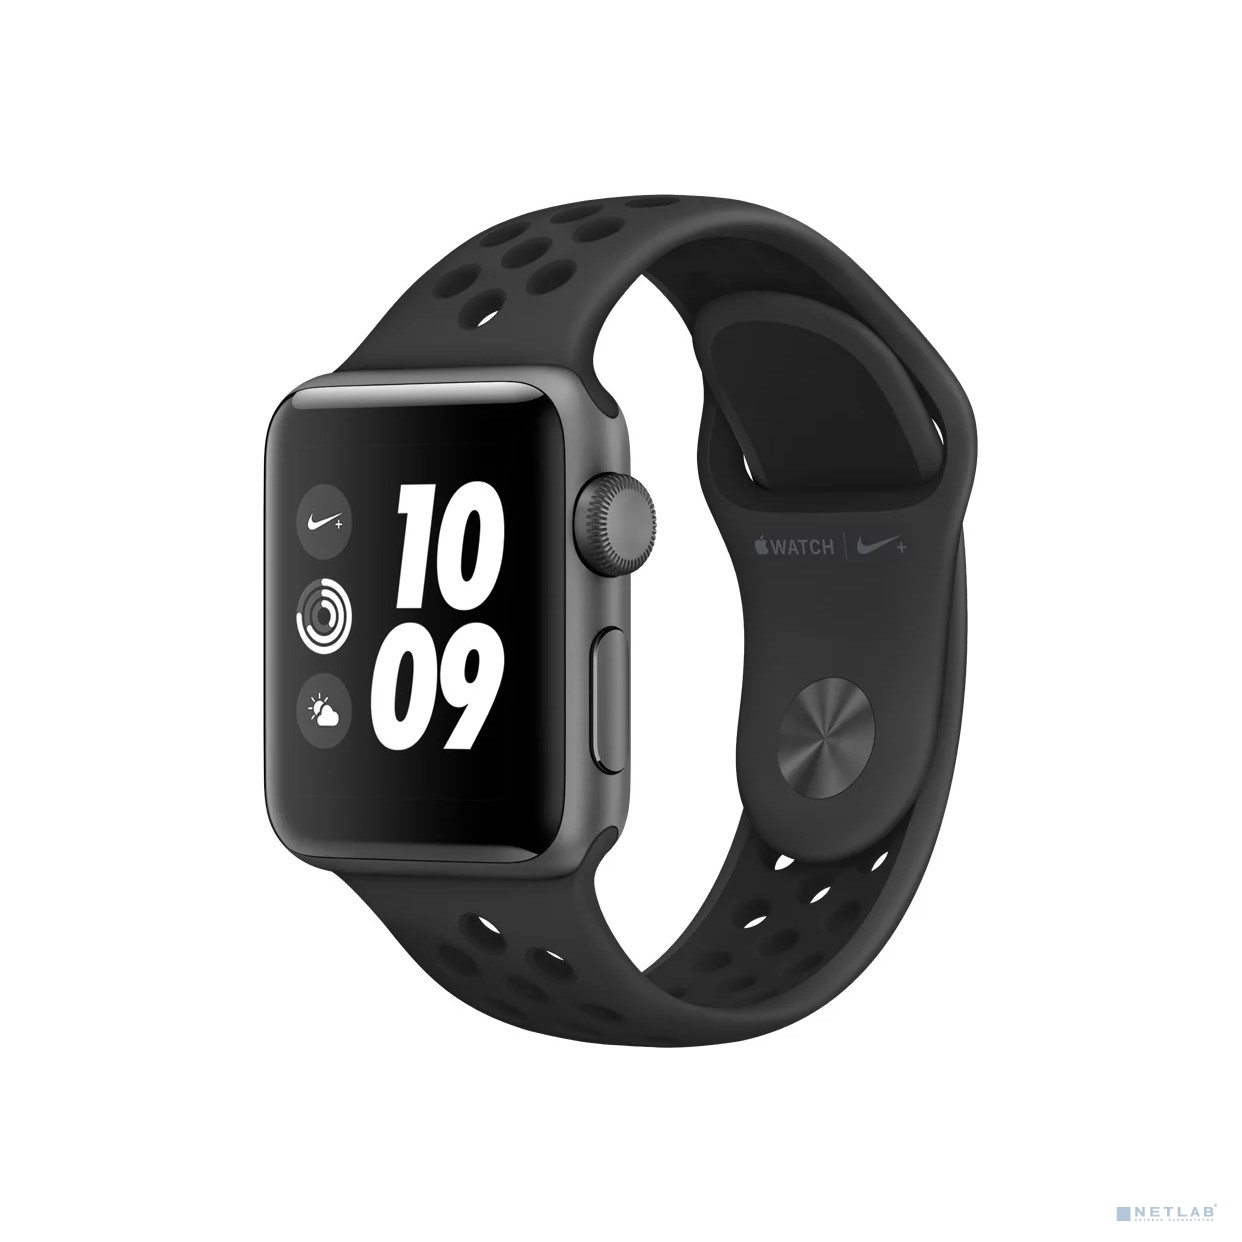 Apple Watch Nike+ Series 3 38mm Space Grey Aluminium with Nike Sport Band Anthracite/Black [MQKY2RU/A]